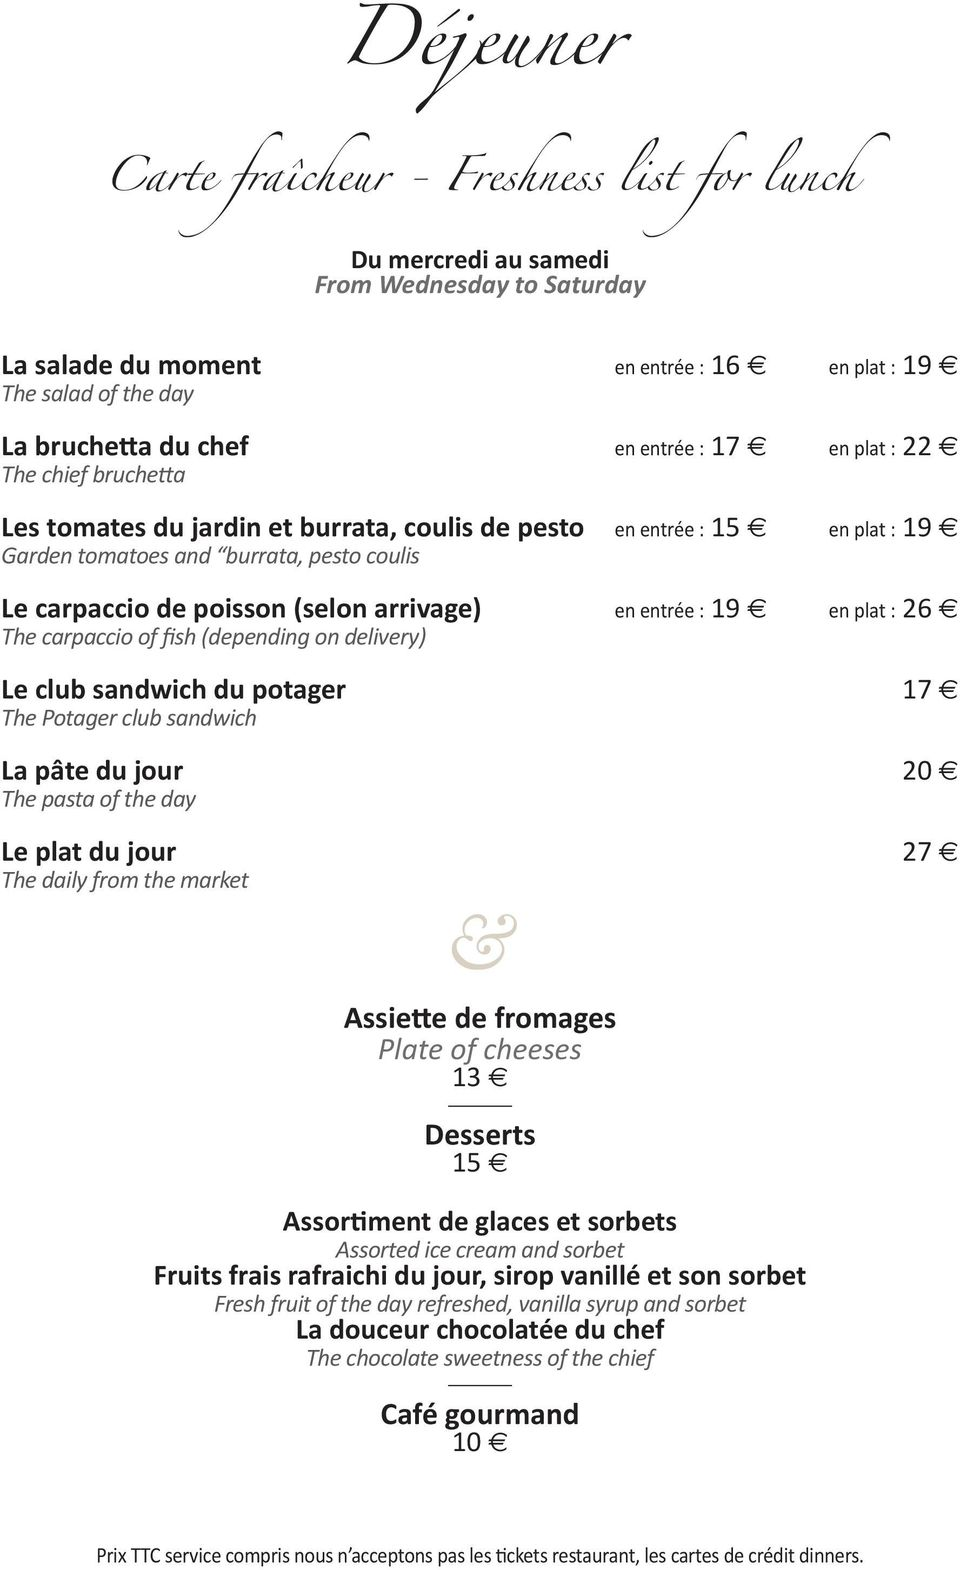 (selon arrivage) en entrée : 19 e en plat : 26 e The carpaccio of fish (depending on delivery) Le club sandwich du potager The Potager club sandwich La pâte du jour The pasta of the day 17 e 20 e Le